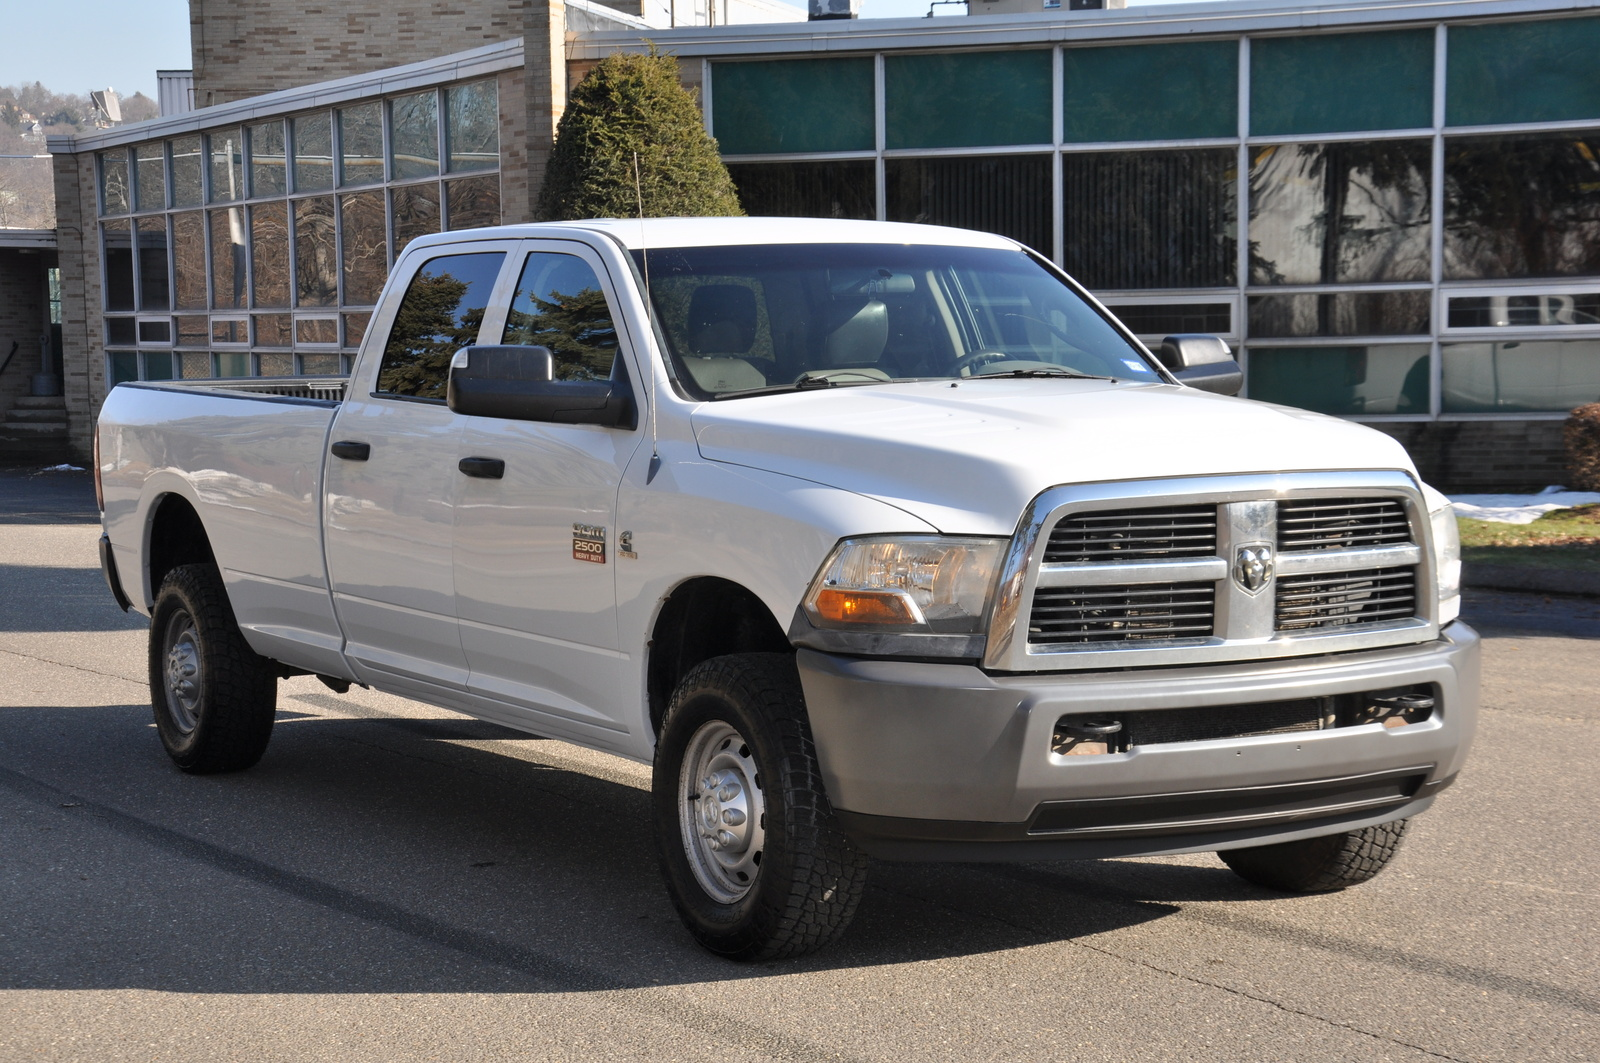 2010 Dodge Ram 2500 Towing Capacity